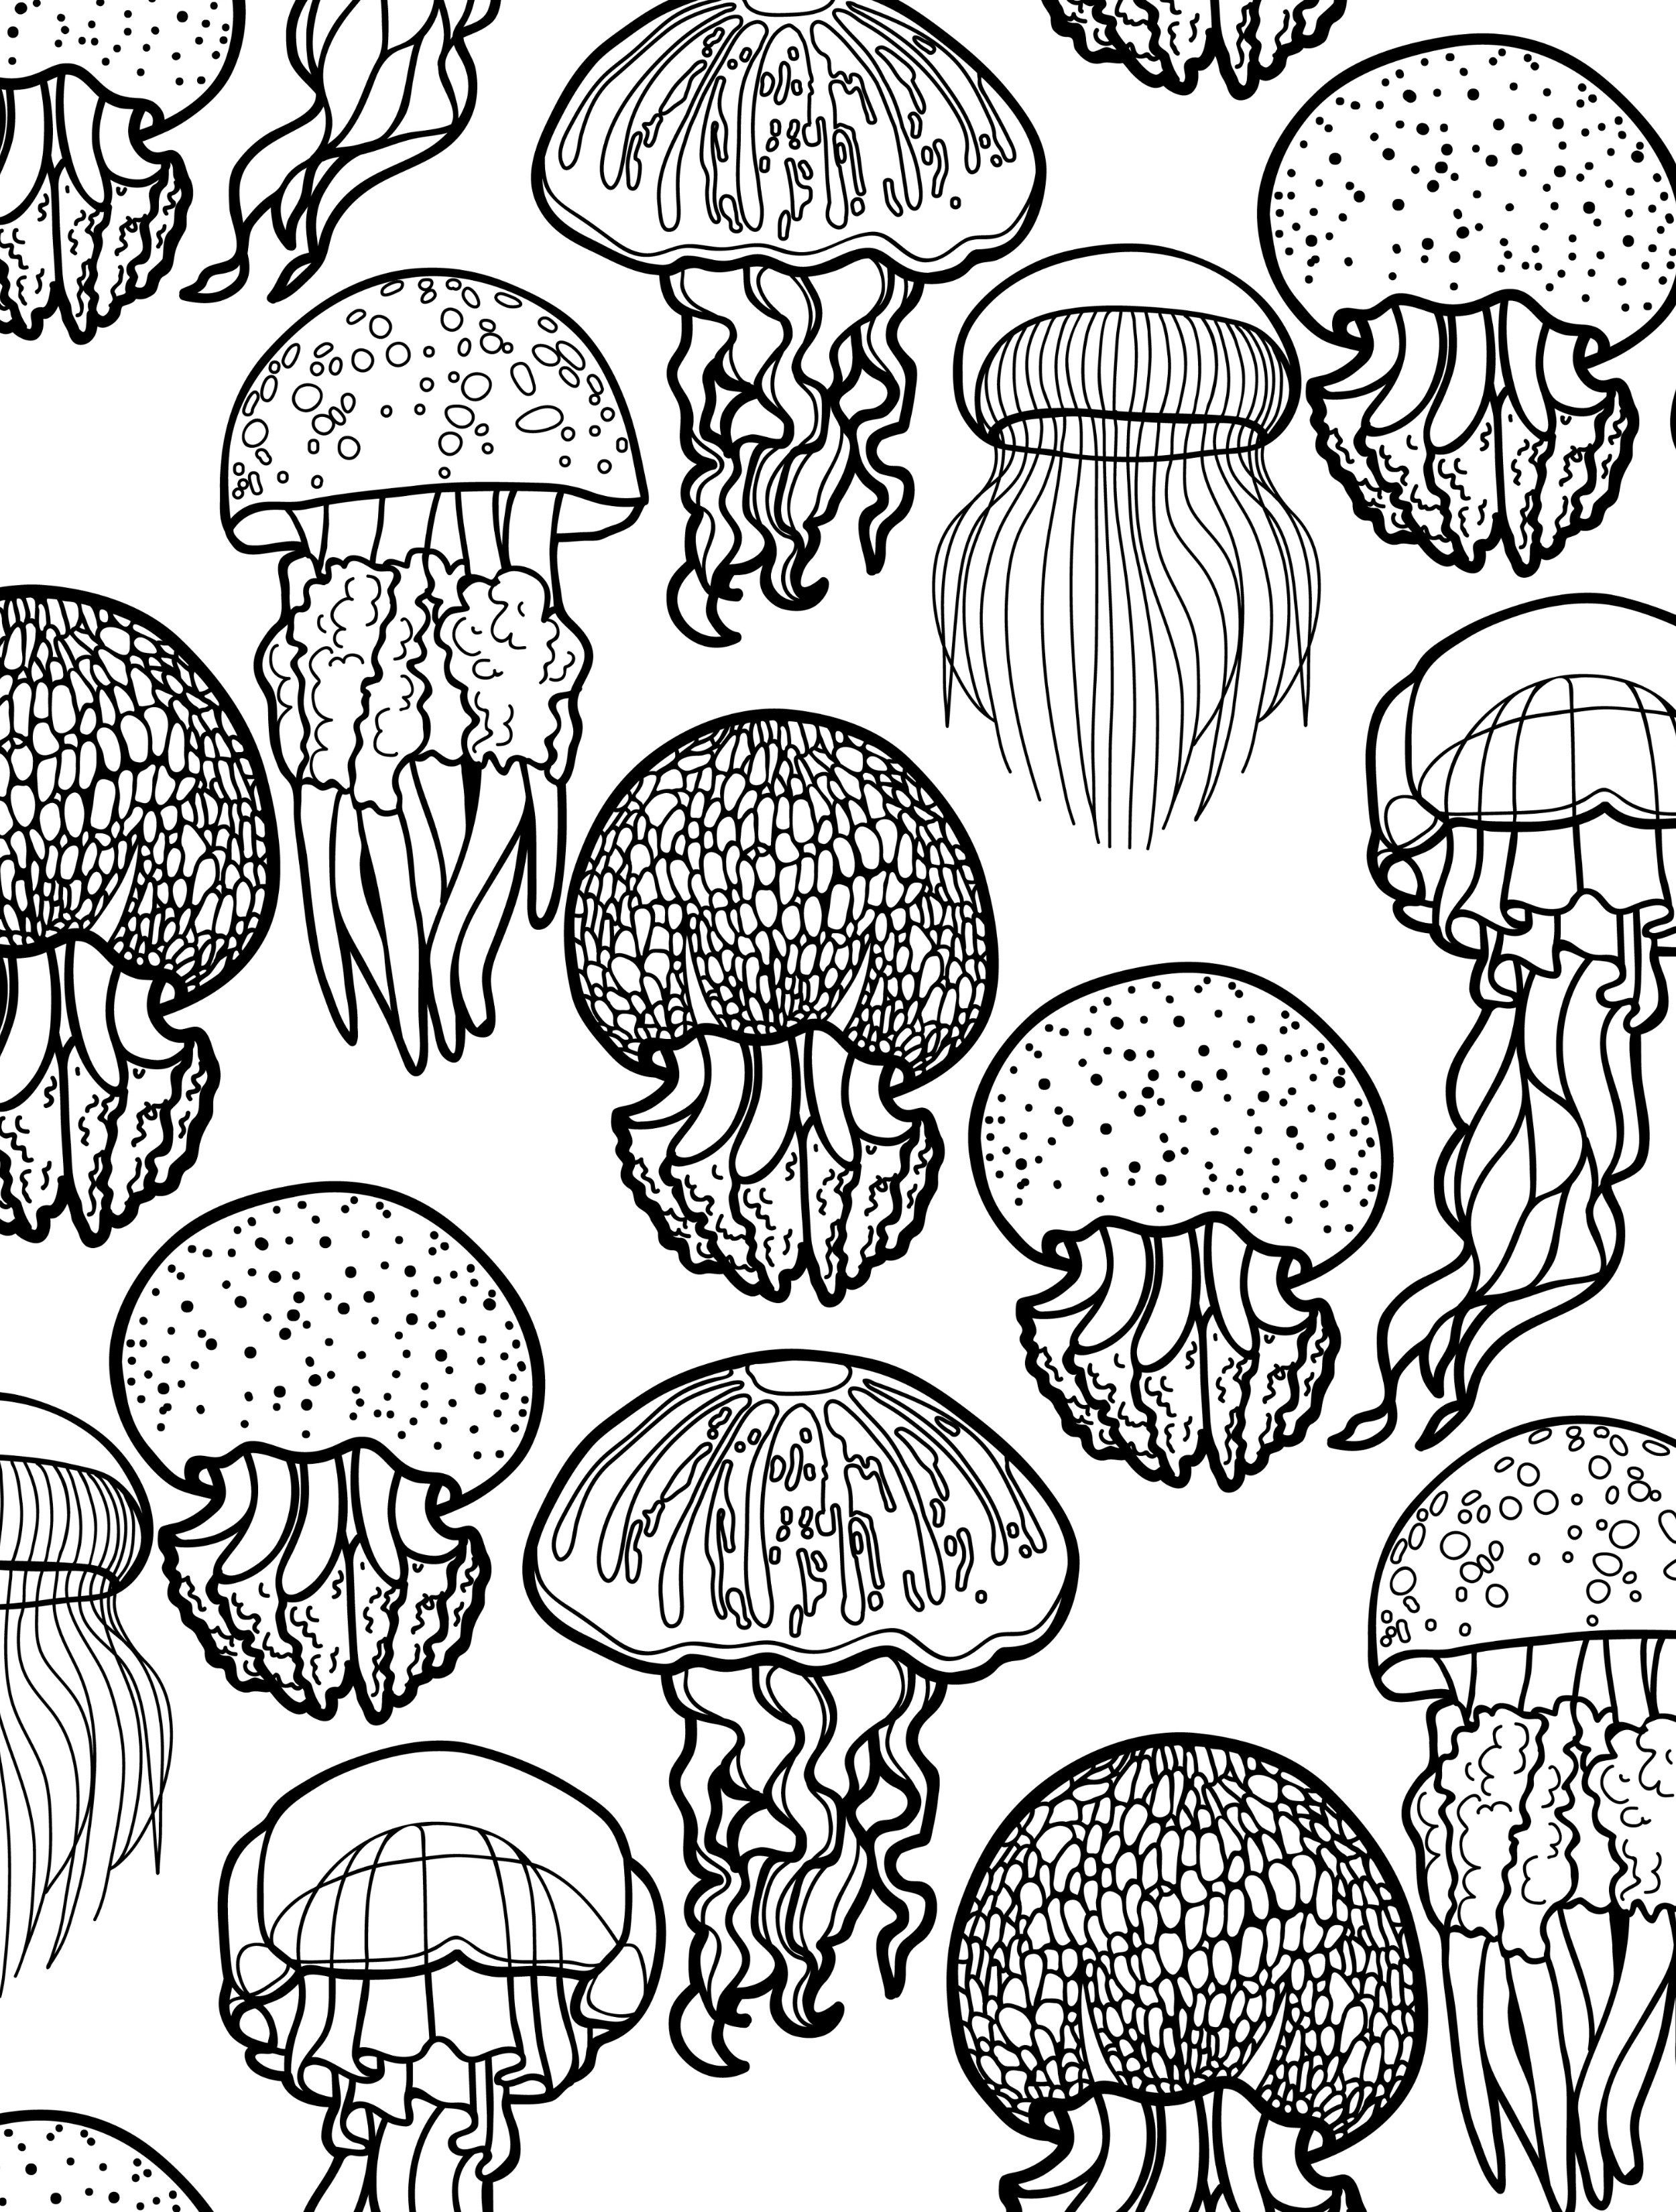 23 Free Printable Insect & Animal Adult Coloring Pages | Картинки ...